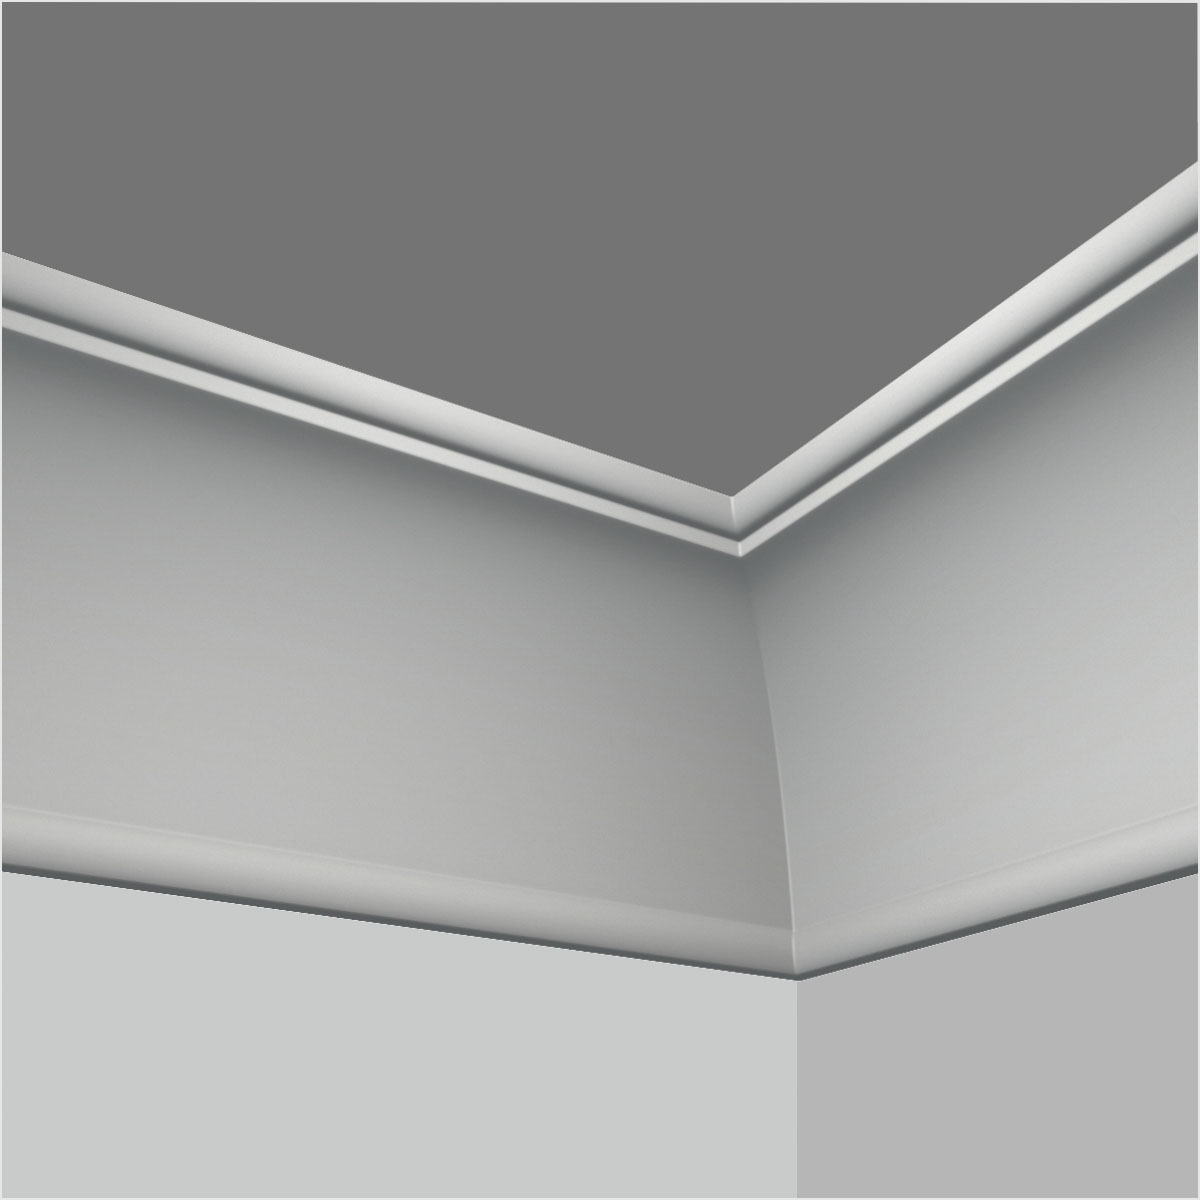 Simple Cove 9 Inch Crown Moulding